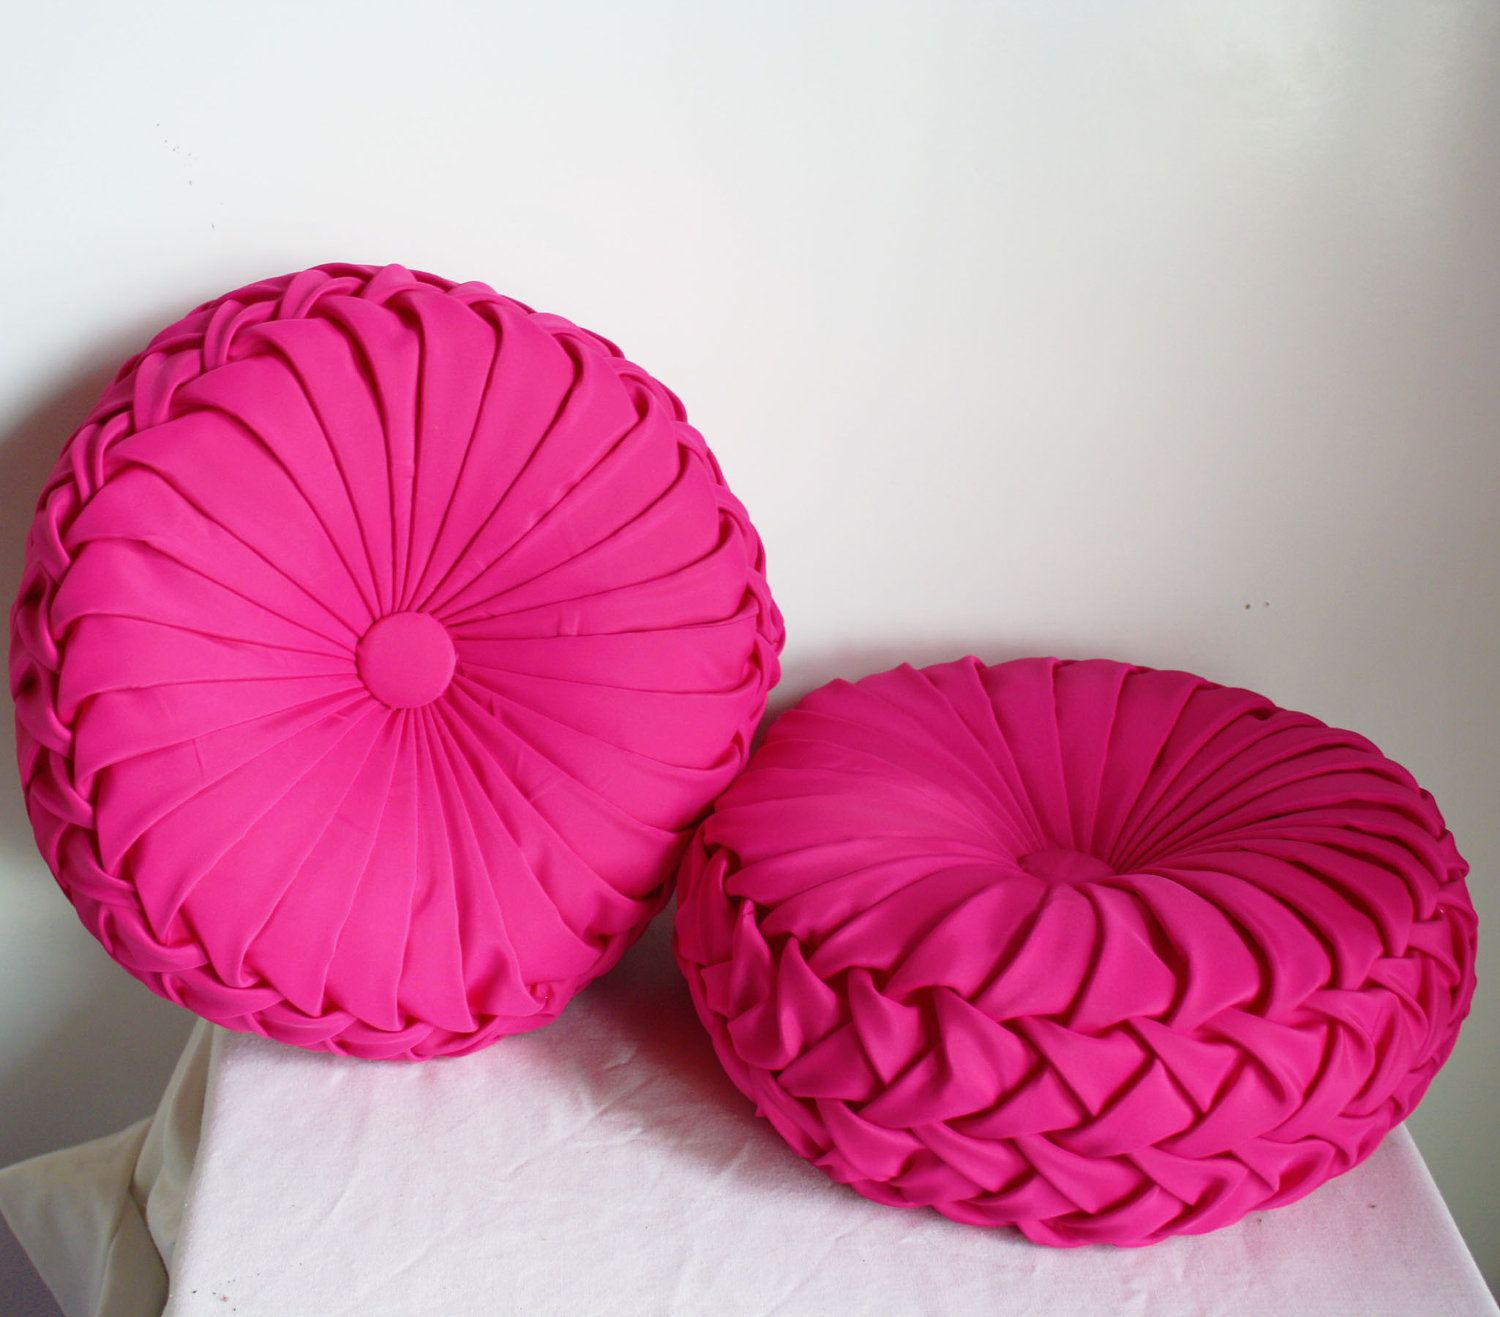 Round Decorative Pillows Made To Order Handmade 1960s Vintage Inspired Round Smocked